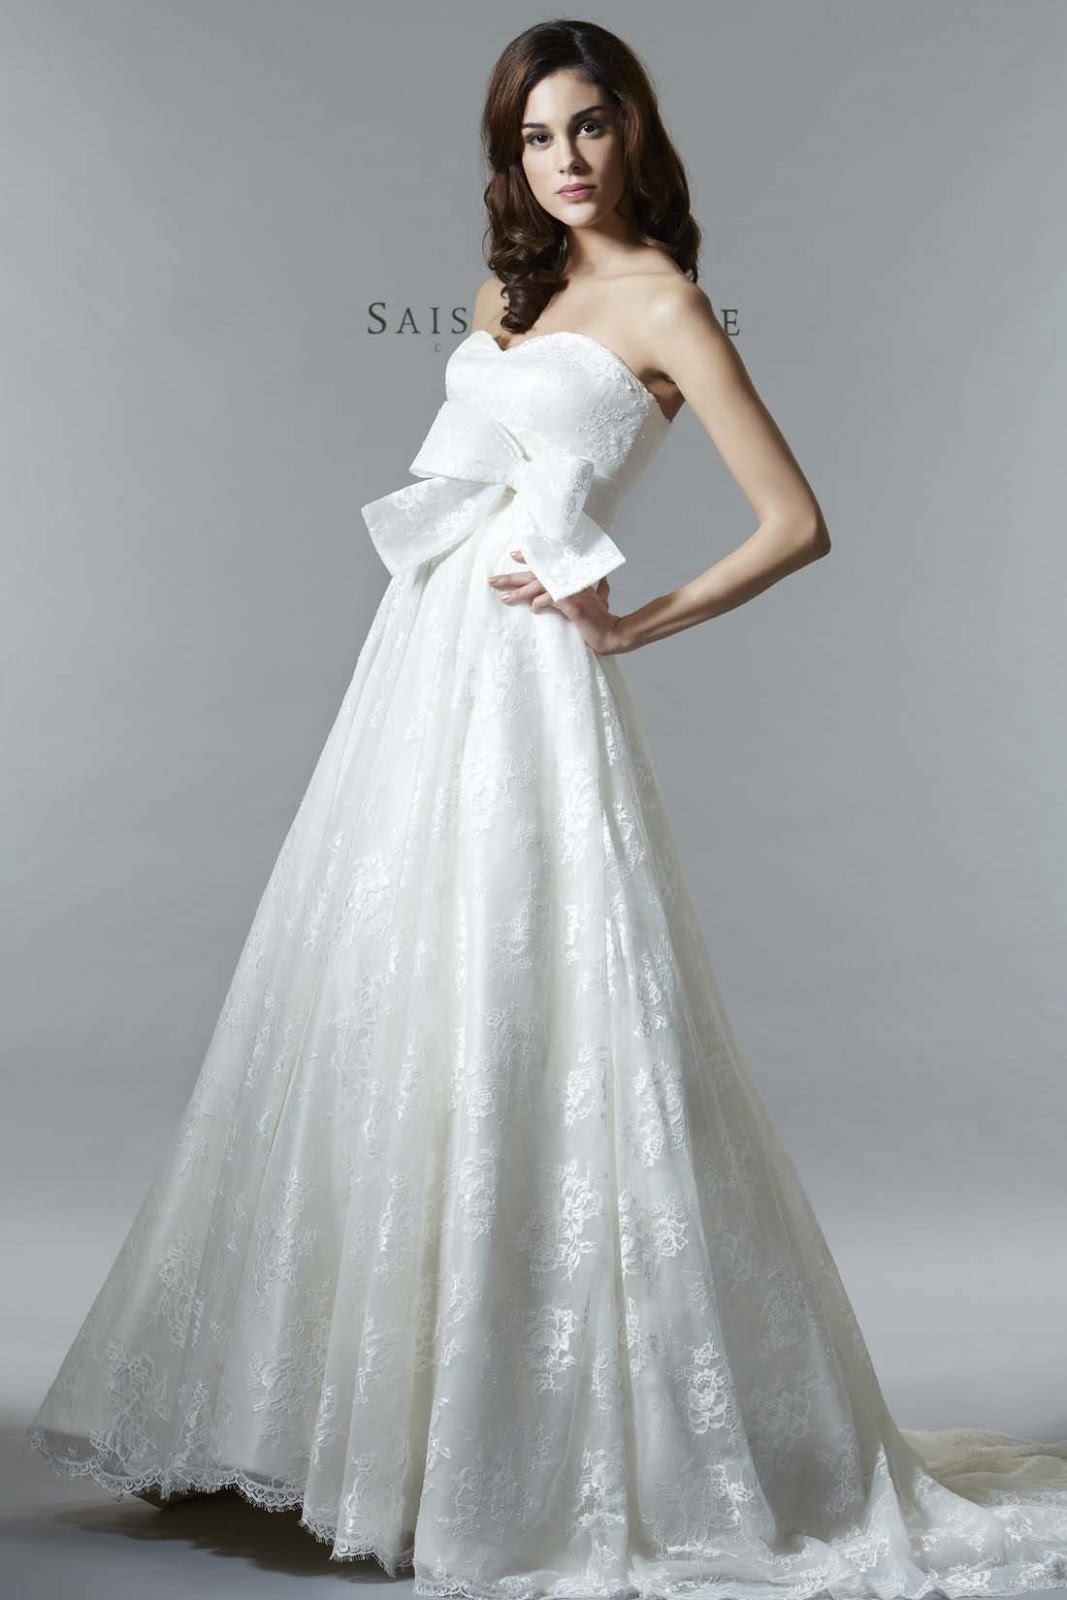 Blog of Wedding and Occasion Wear: 2014 Fairy Tale Wedding ...